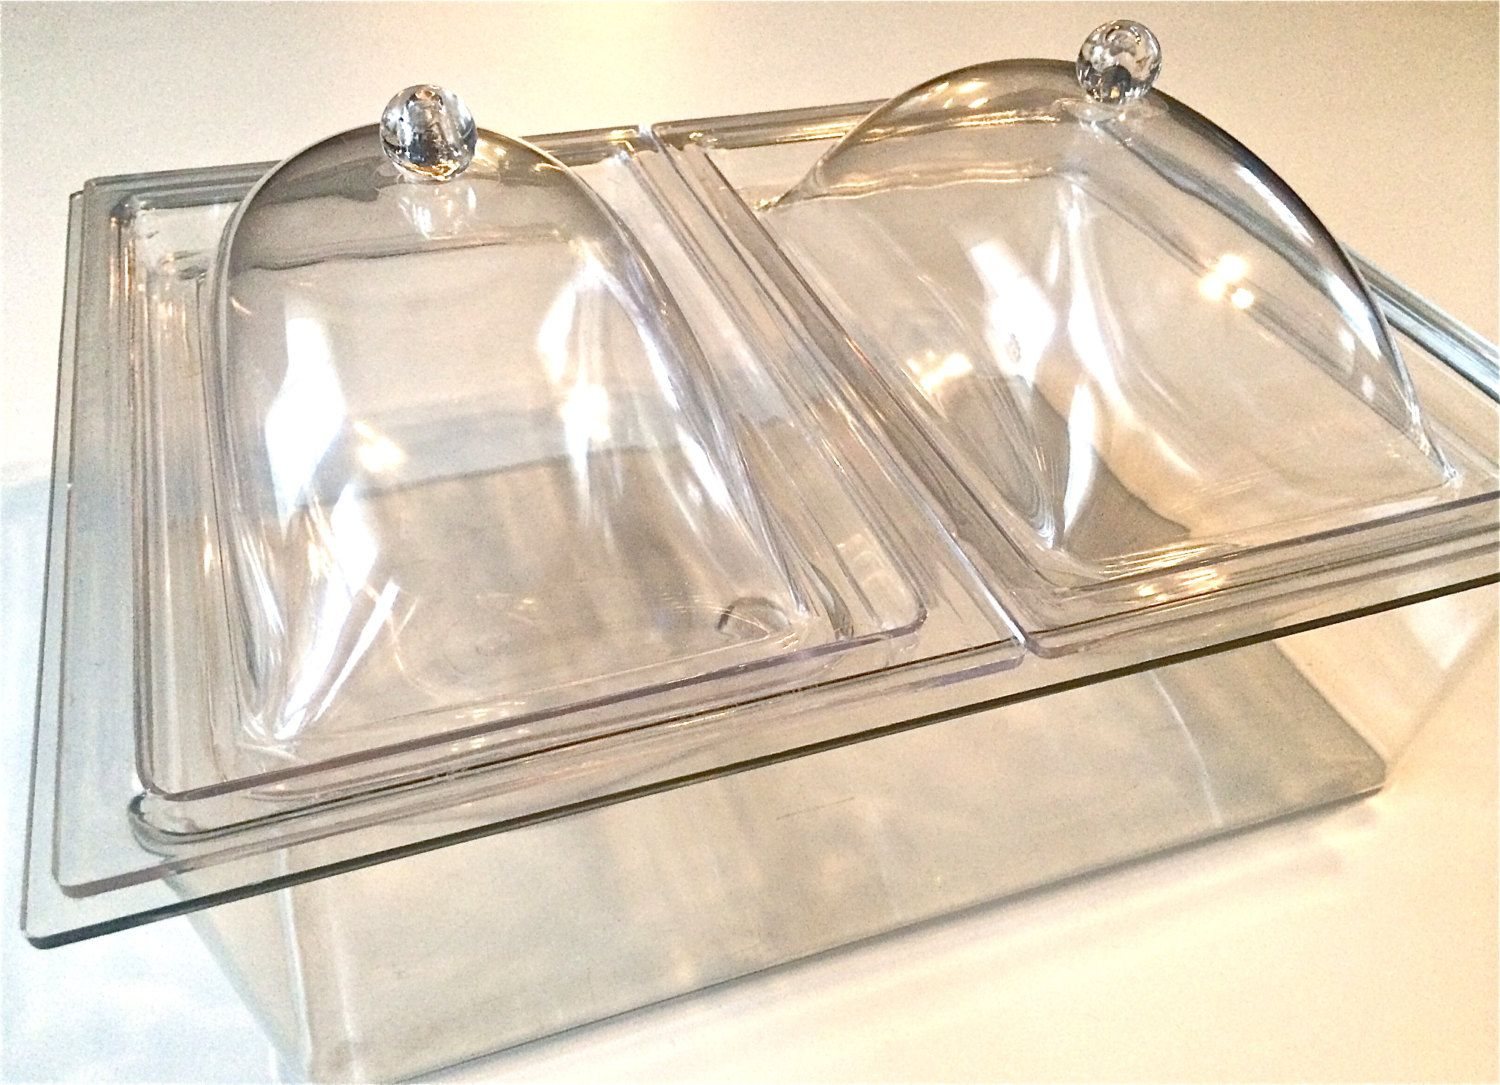 vintage lucite acrylic buffet server hot or cold foods by yatsdomino on etsy - Cold Buffet Server